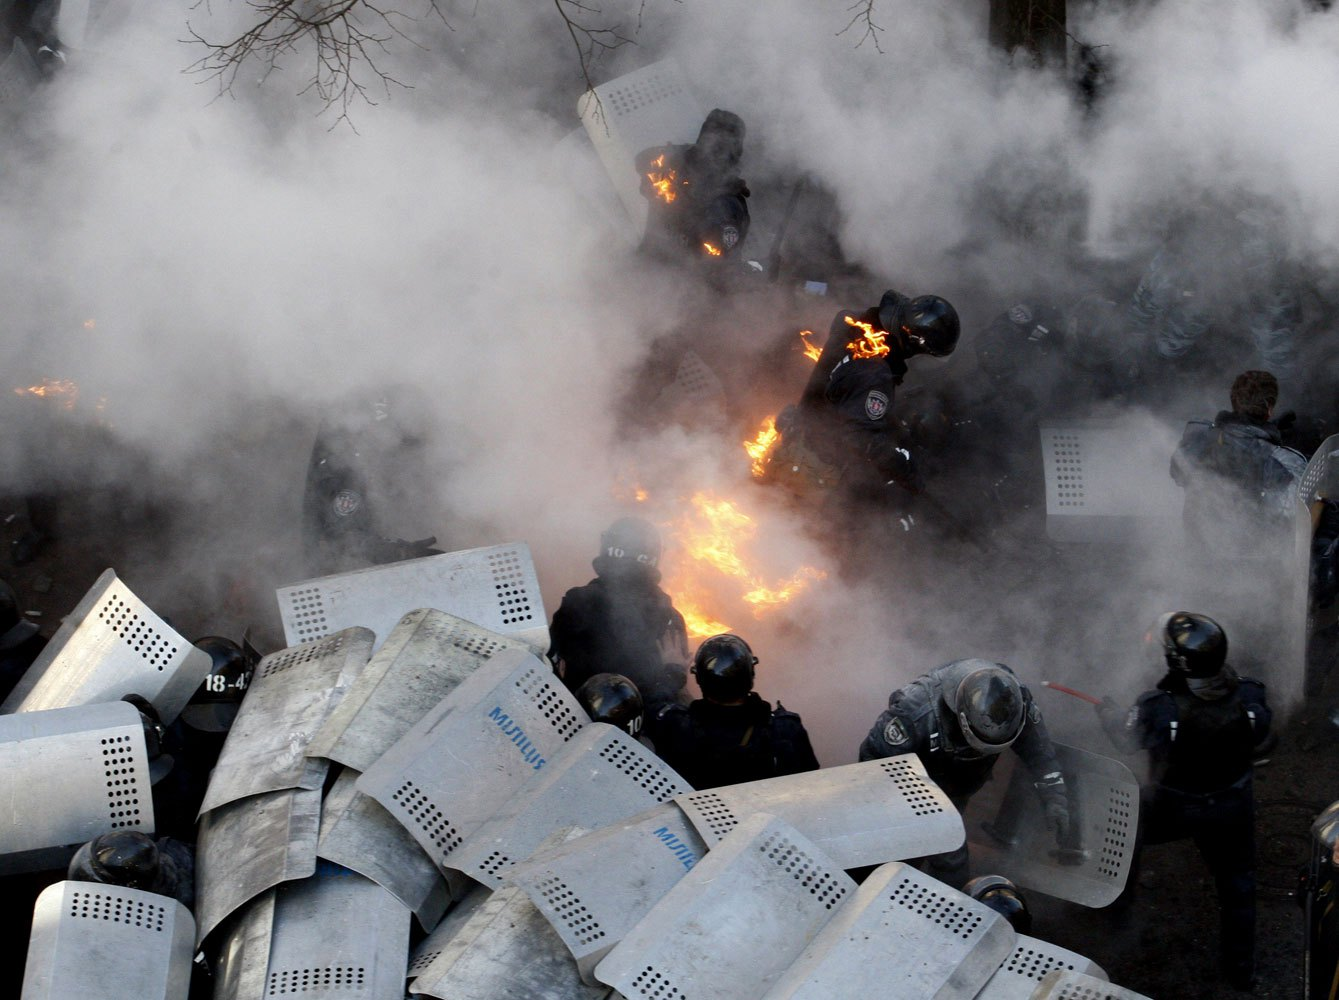 Policemen run amid flames during clashes with anti-government protesters in front of the Ukrainian Parliament in Kiev, on Feb. 18, 2014.